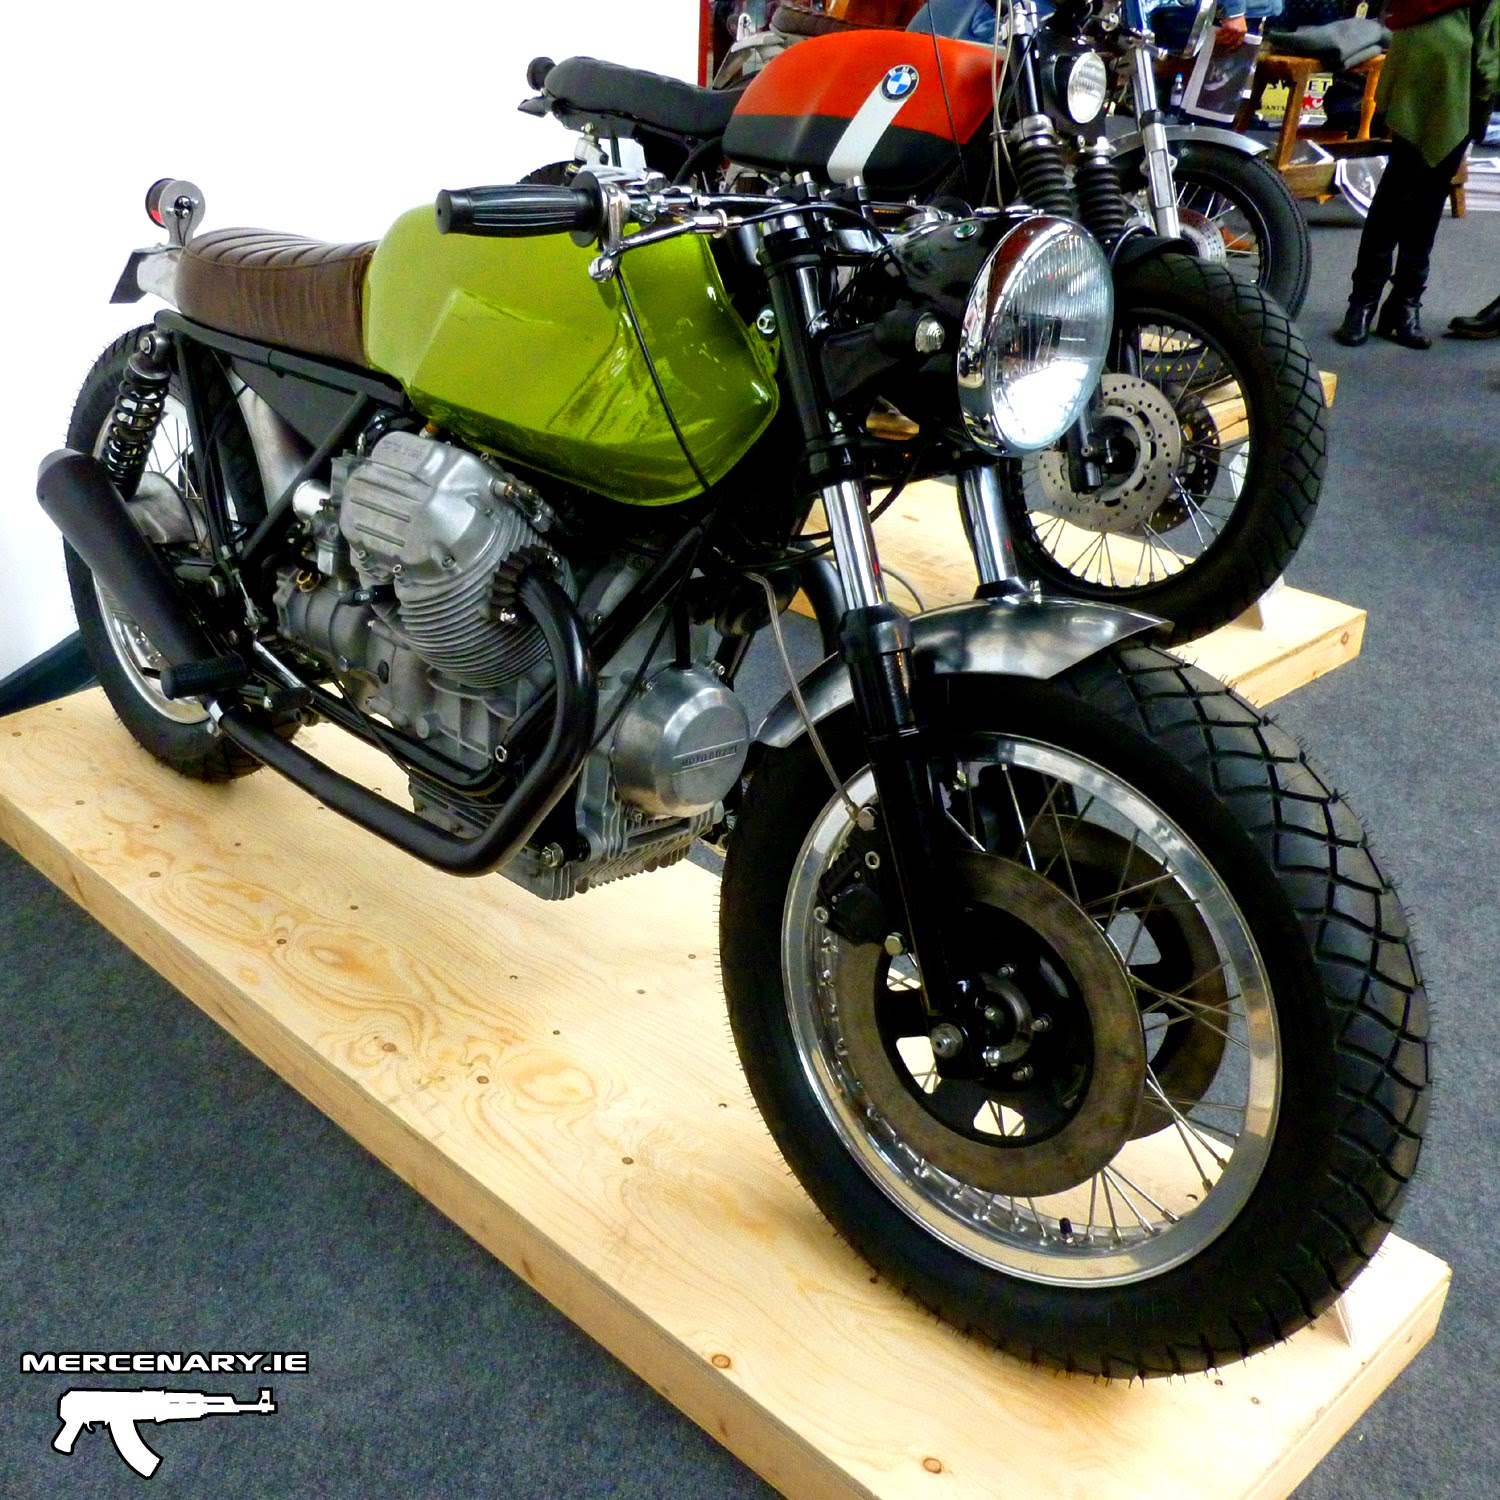 BSMC III - Untitled Motorcycles UMC-26